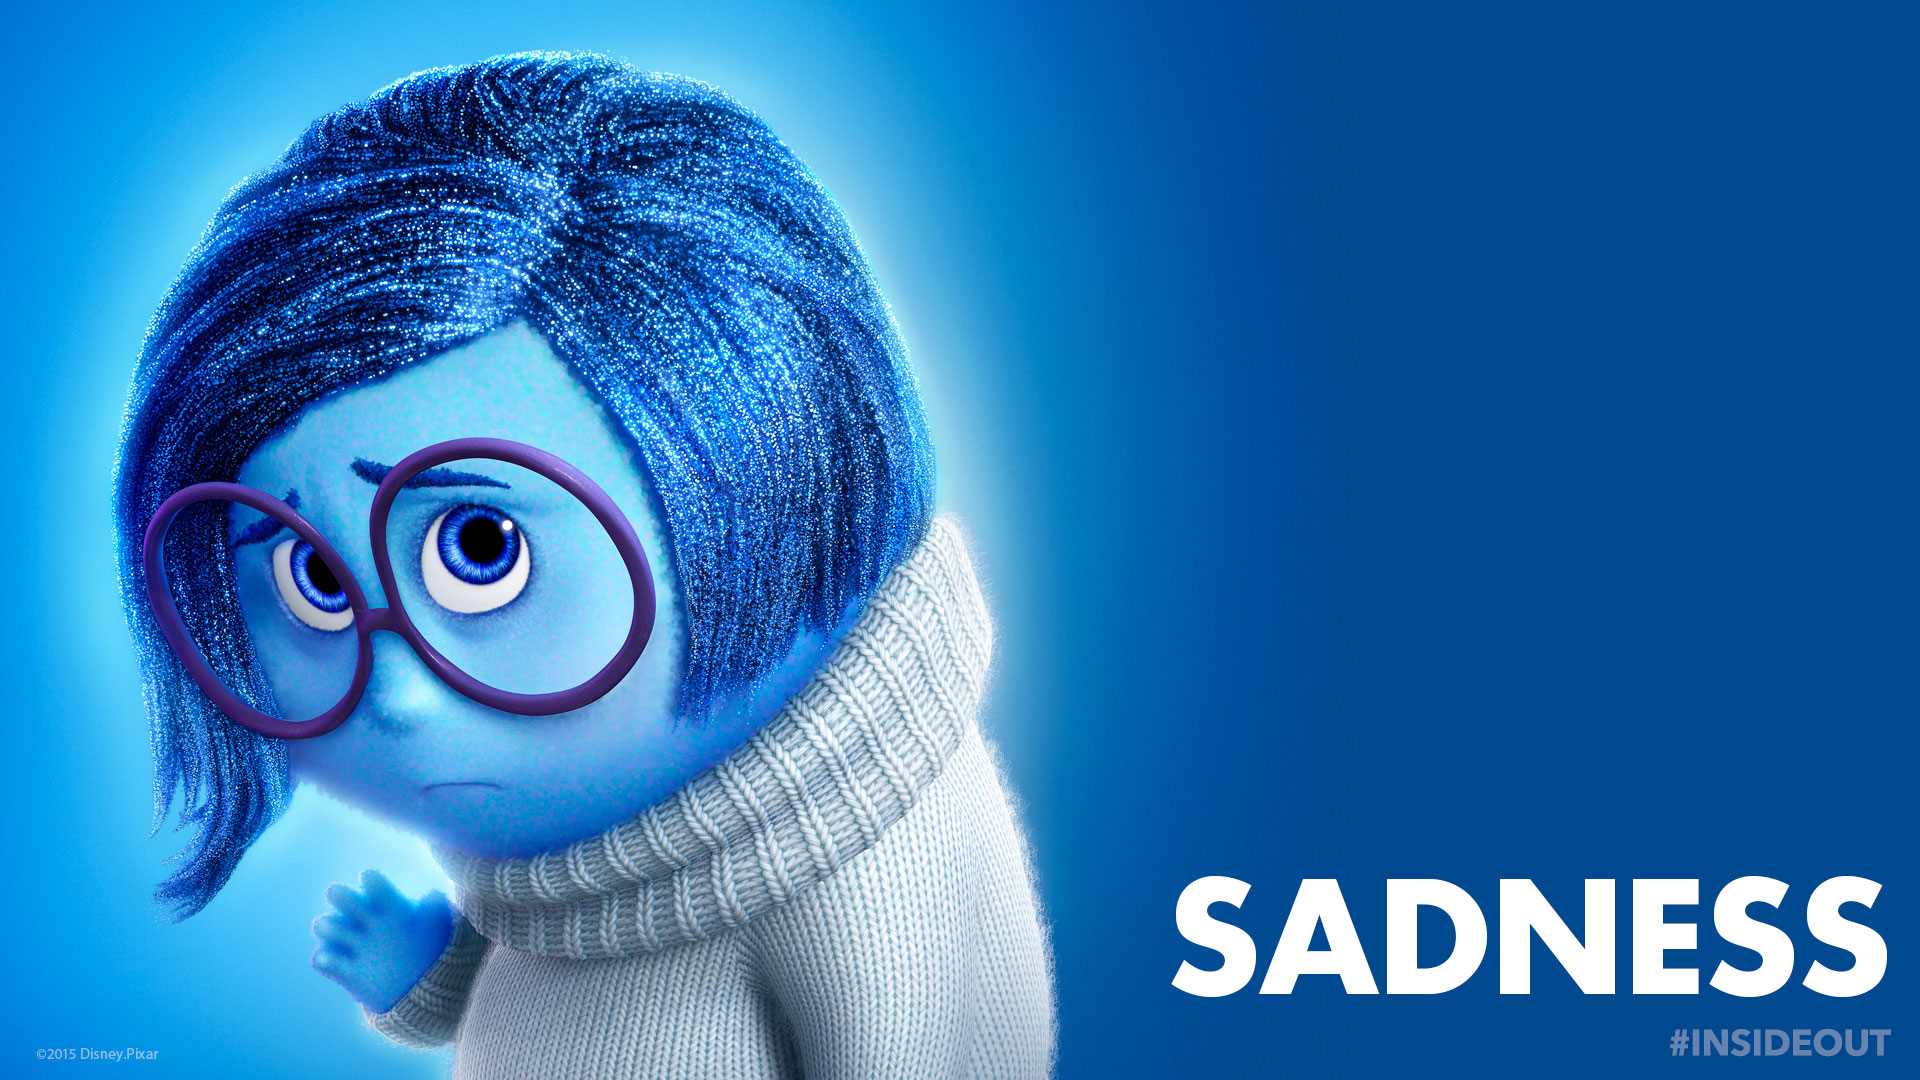 Inside Out-Sadness Wallpaper backgrounds 2015